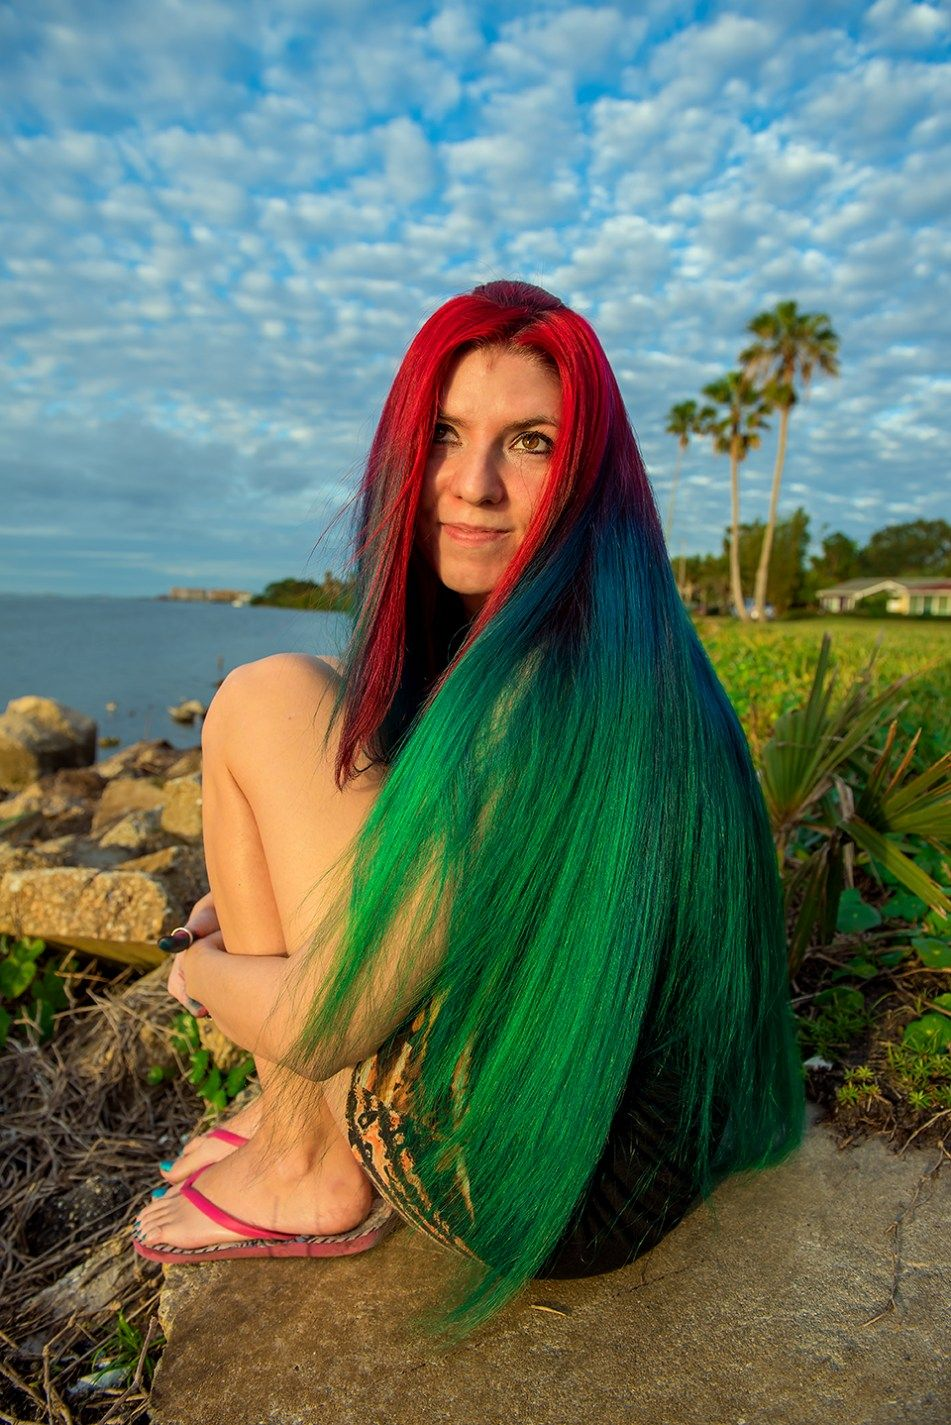 Christmas Colored Hair With Red To Green Gradient 2017 Rainbow Multi